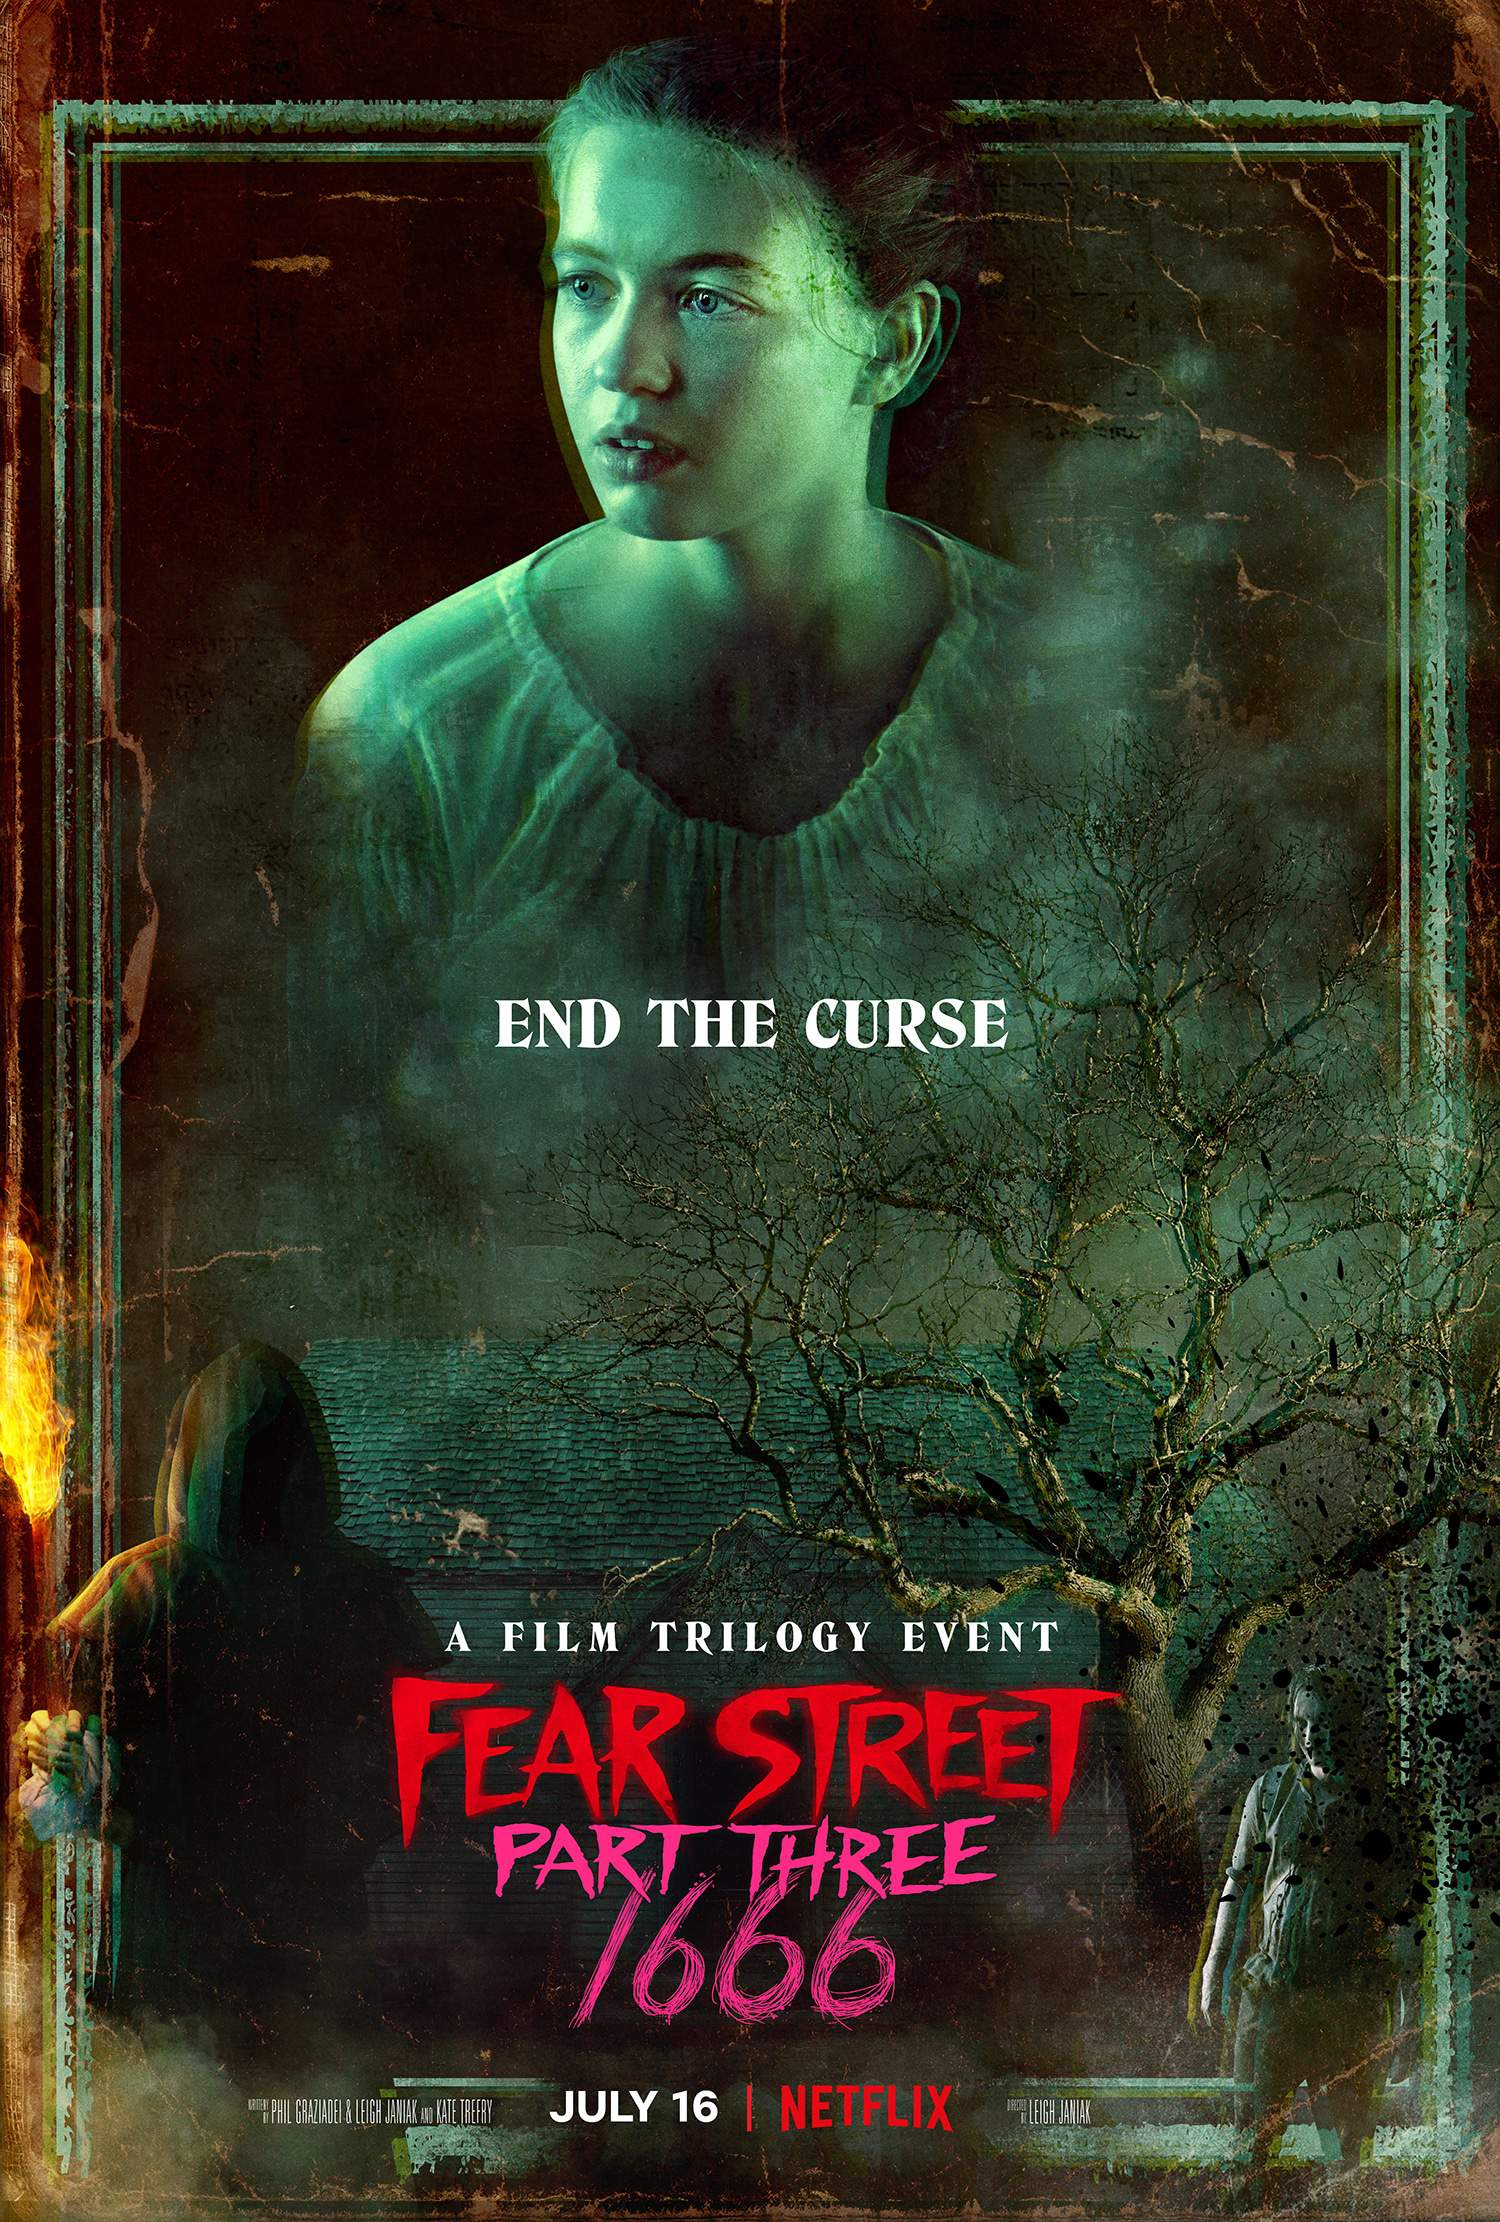 Movie Poster for Fear Street Part Three 1666 featuring Olivia Scott Welch